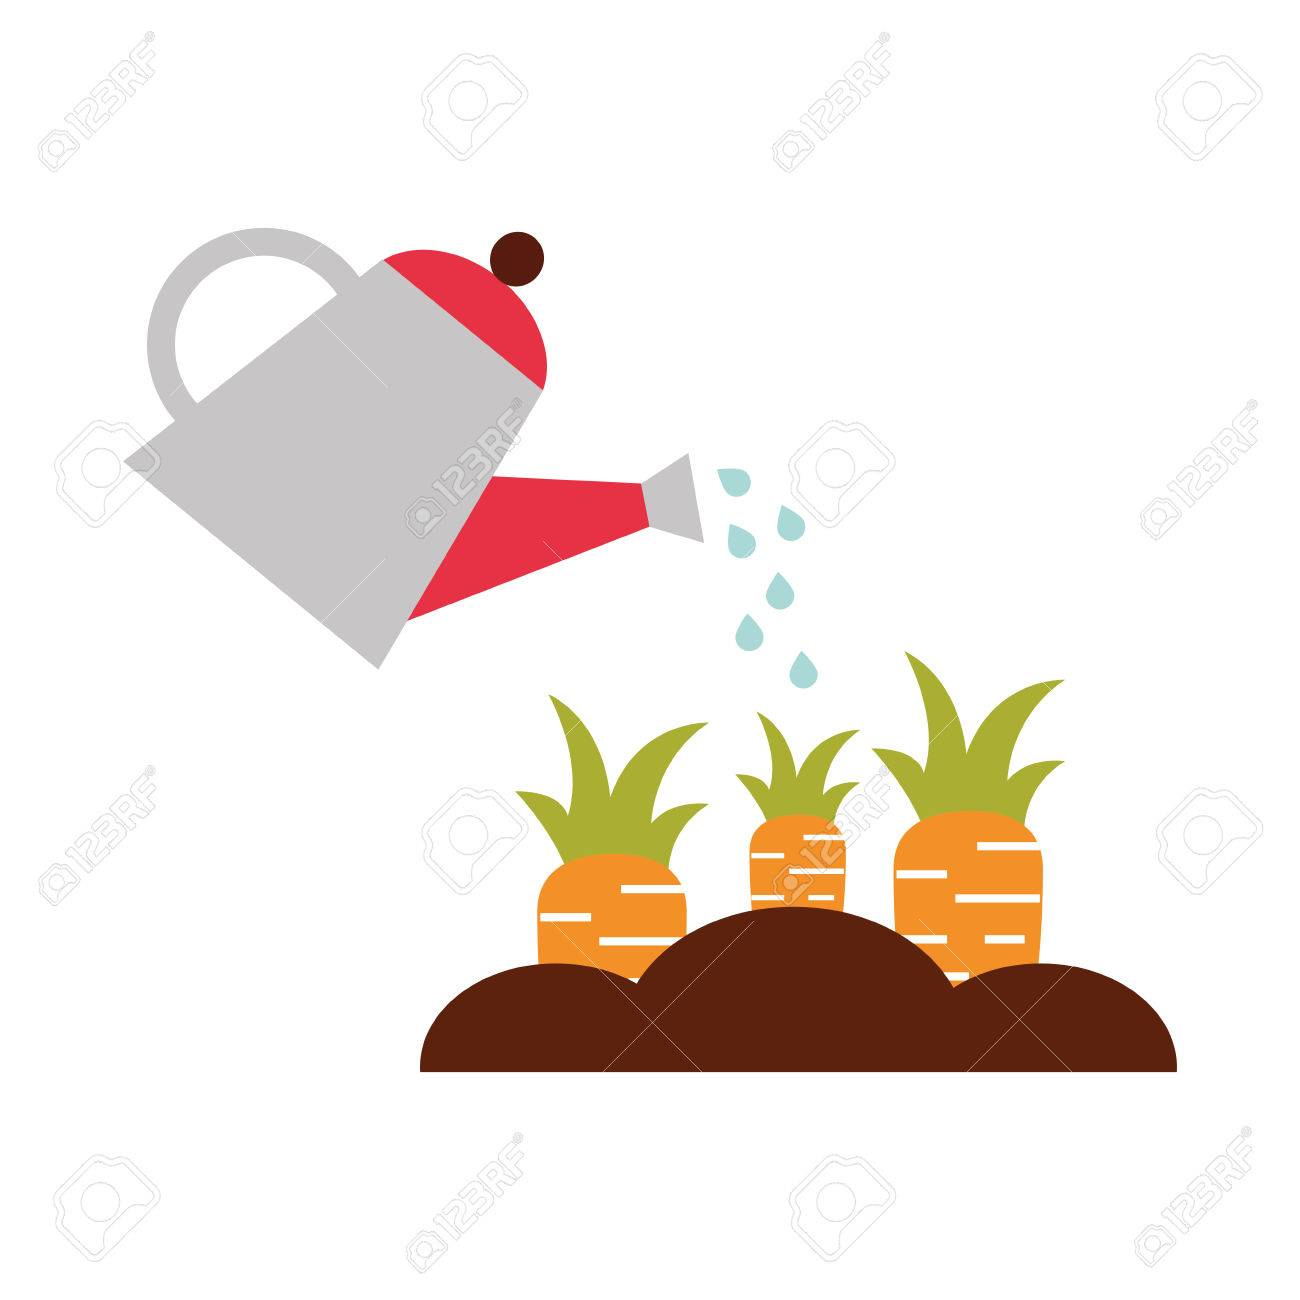 Farming Sprinkler With Carrot Cultivation Vector Illustration